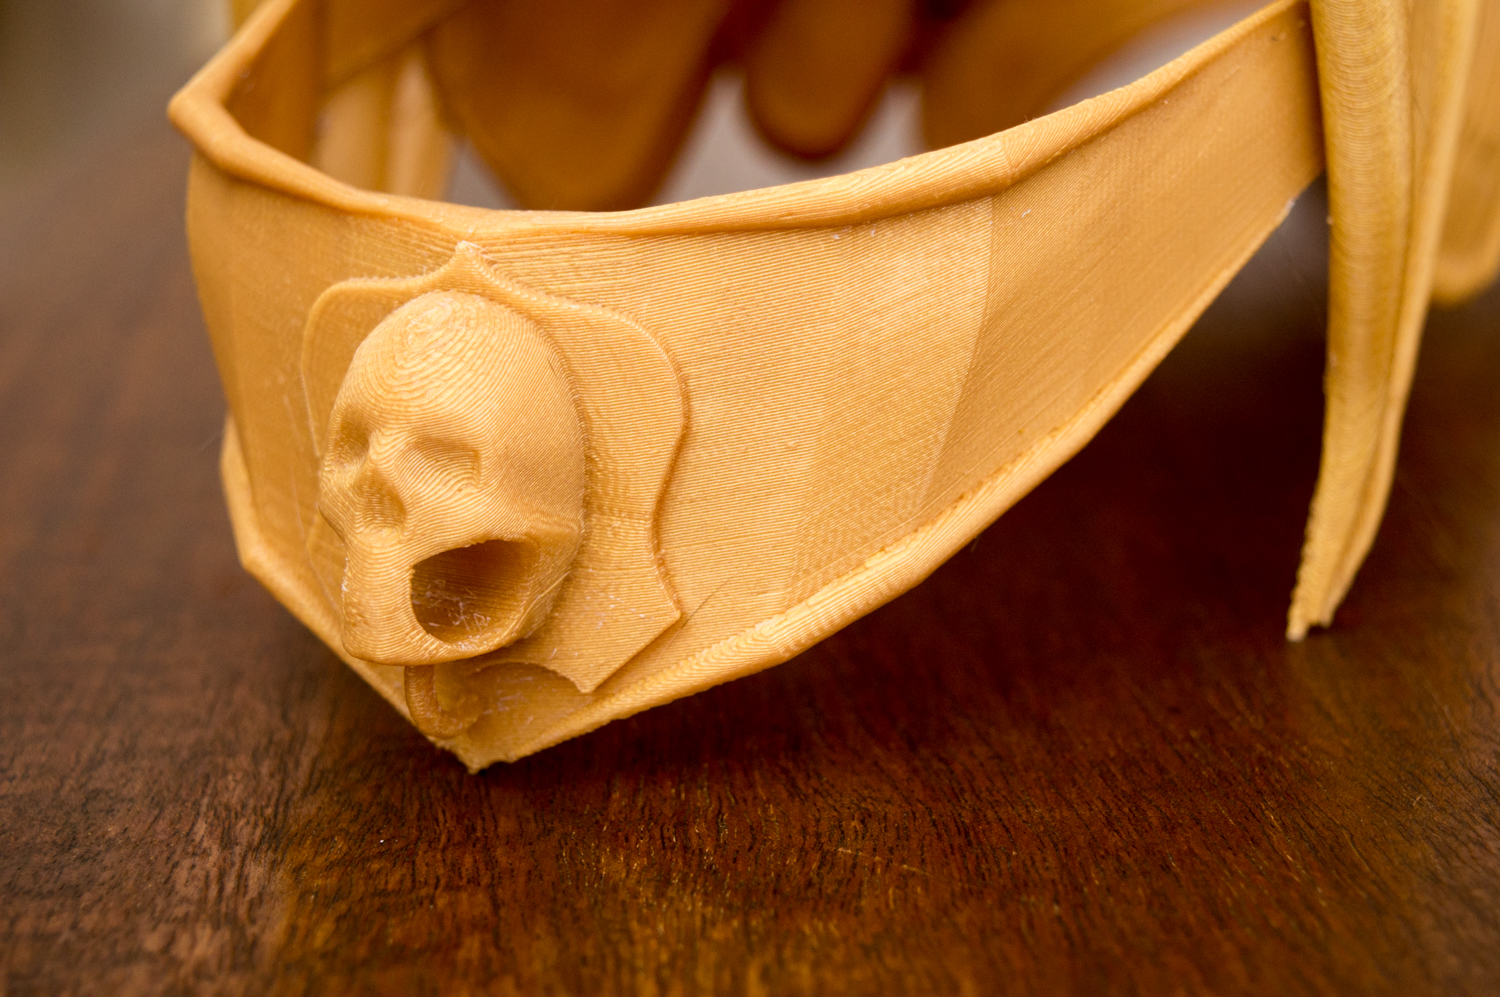 You can hang a name-tag from the skull!